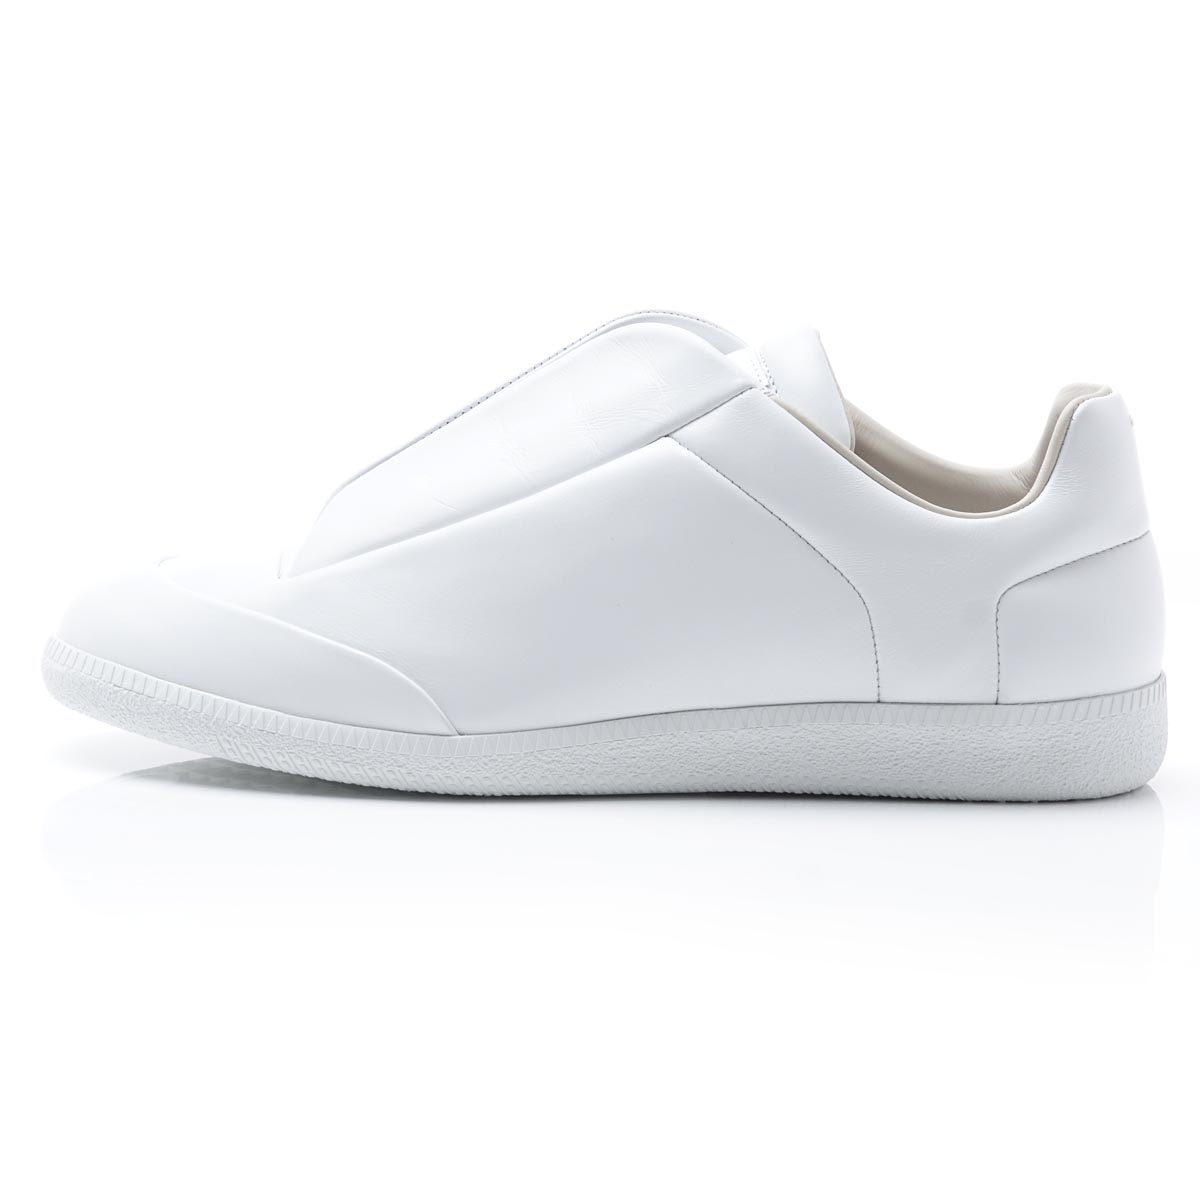 Collection of shoes WHITE white system s37ws0308 sx8966 100 men for メゾンマルジェラ Maison Margiela sneakers 22 woman and man